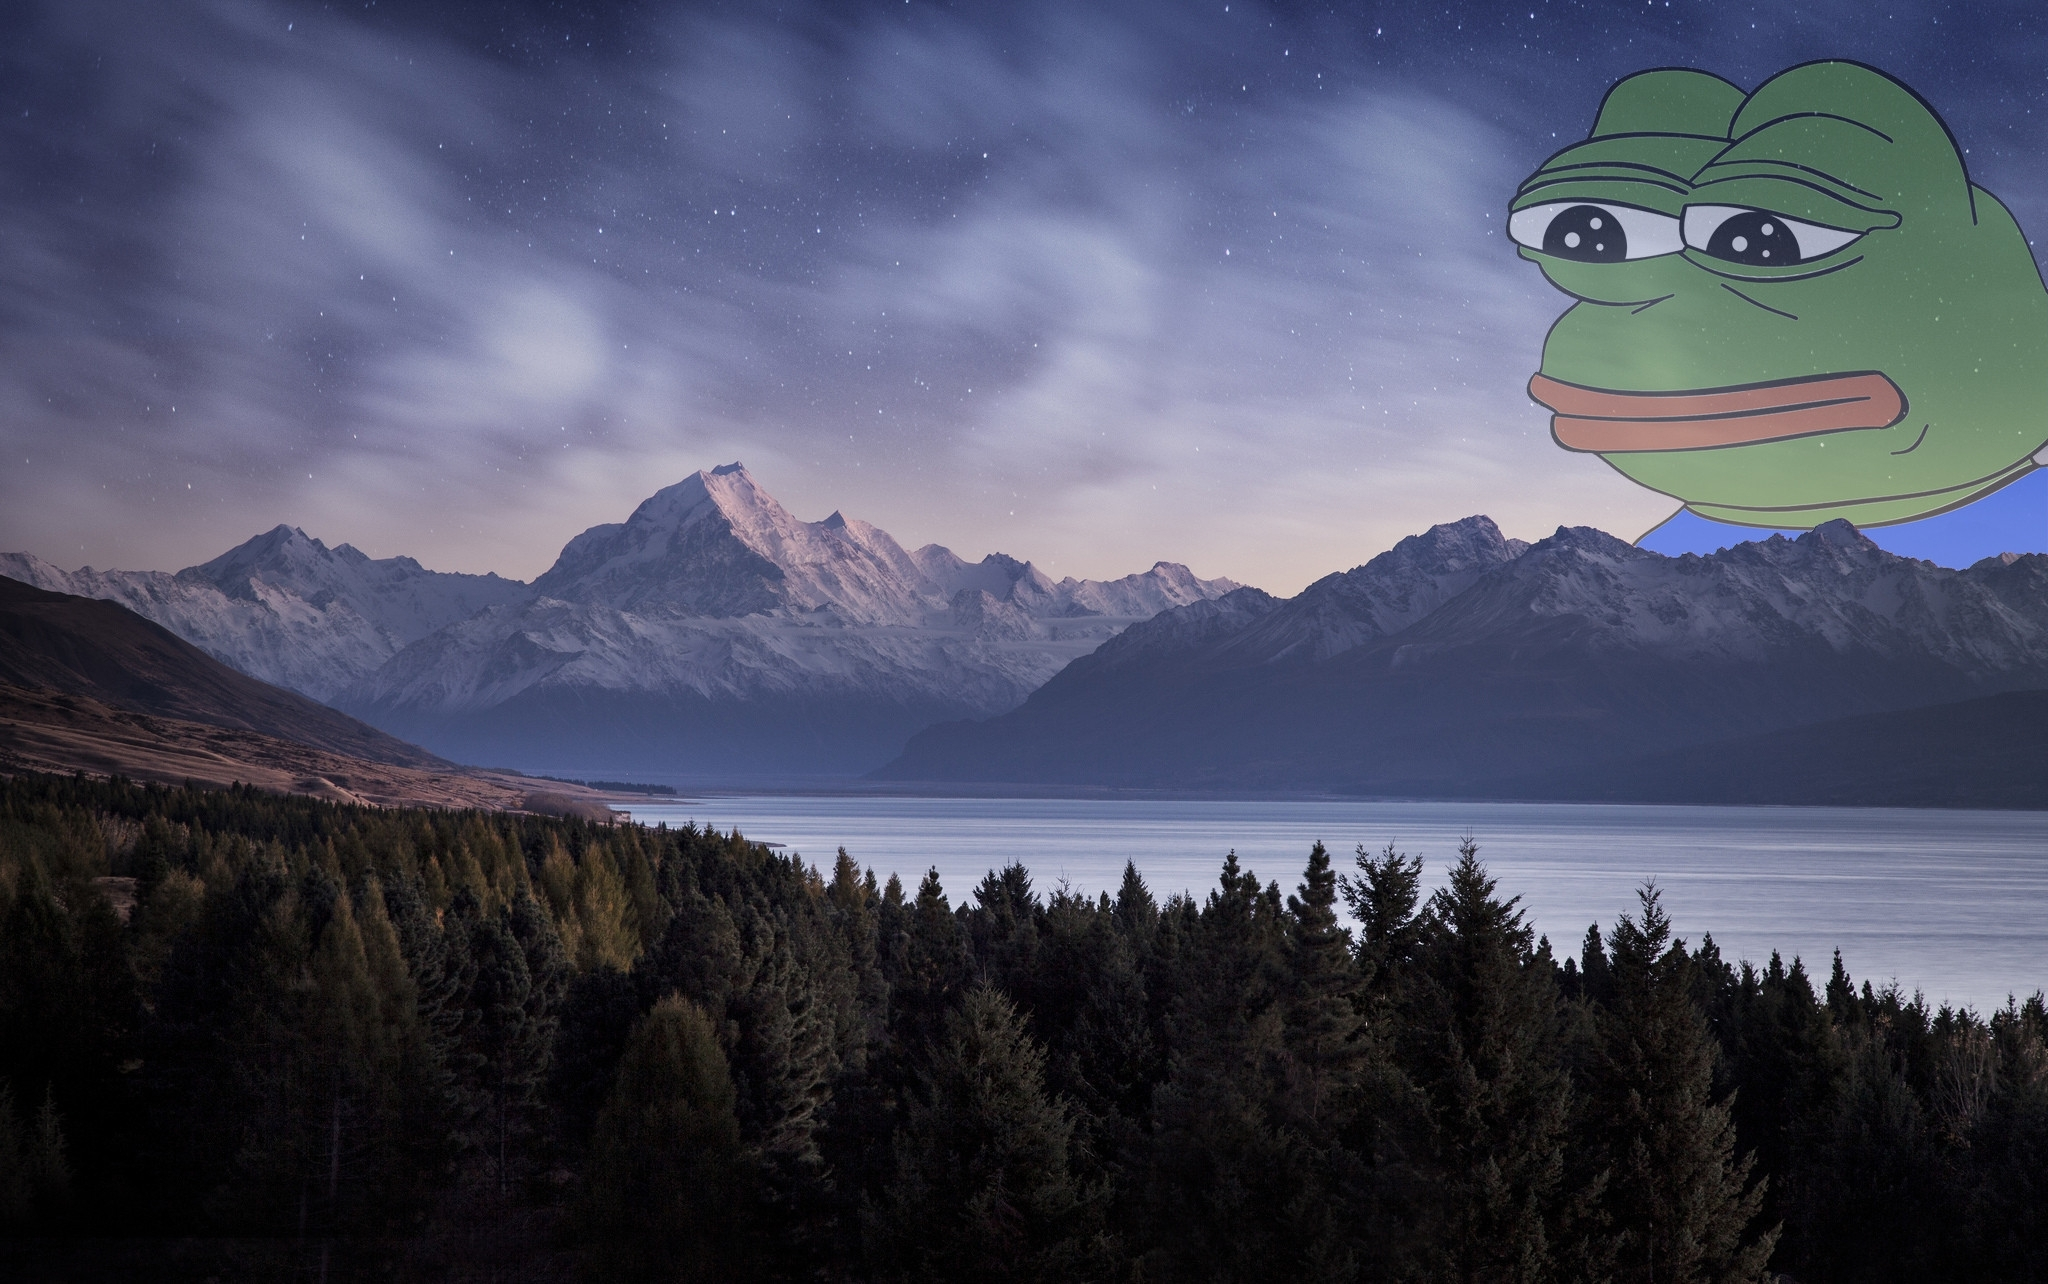 Title : pepe meme wallpaper (72+ images) Dimension : 2048 x 1284. File Type : JPG/JPEG